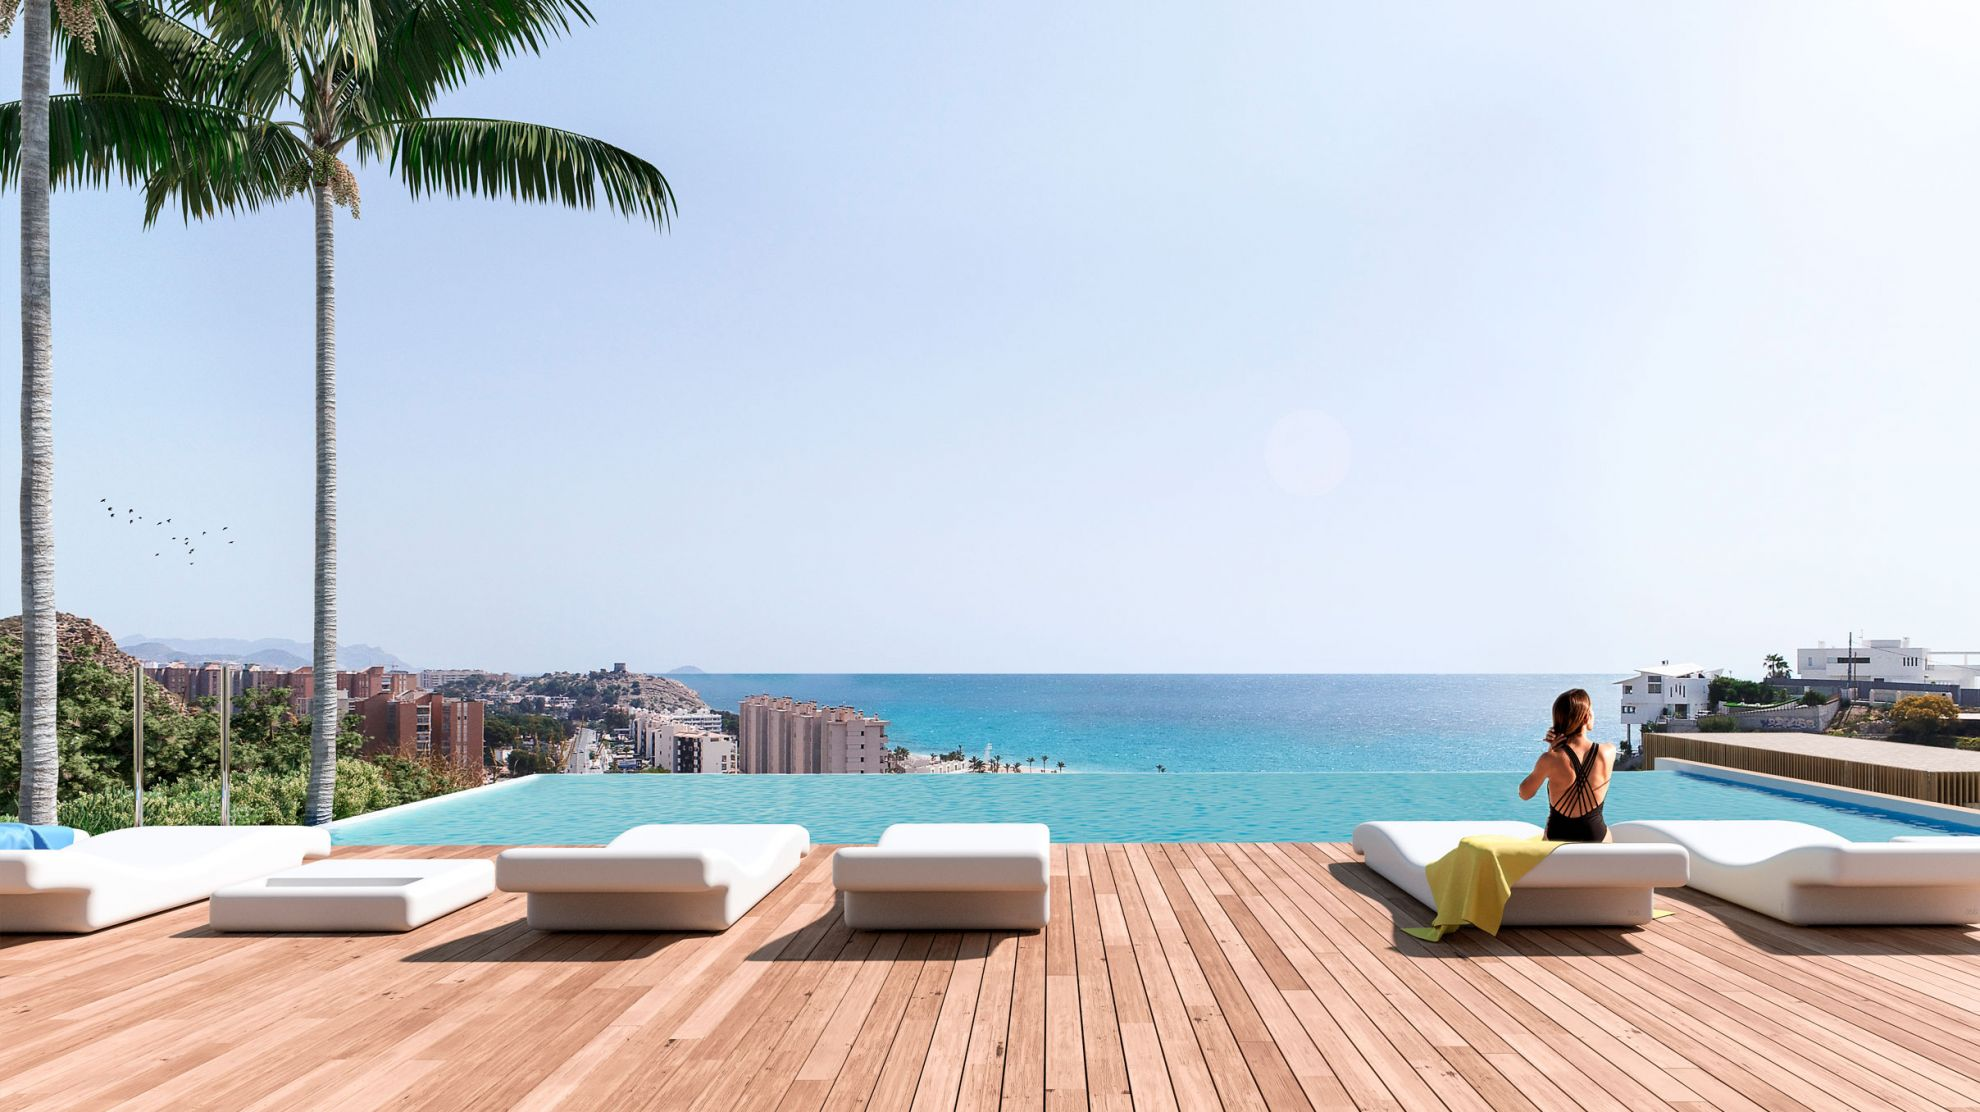 2 and 3 bedroom penthouse-style apartments with big terraces overlookg the sea. House 17 10